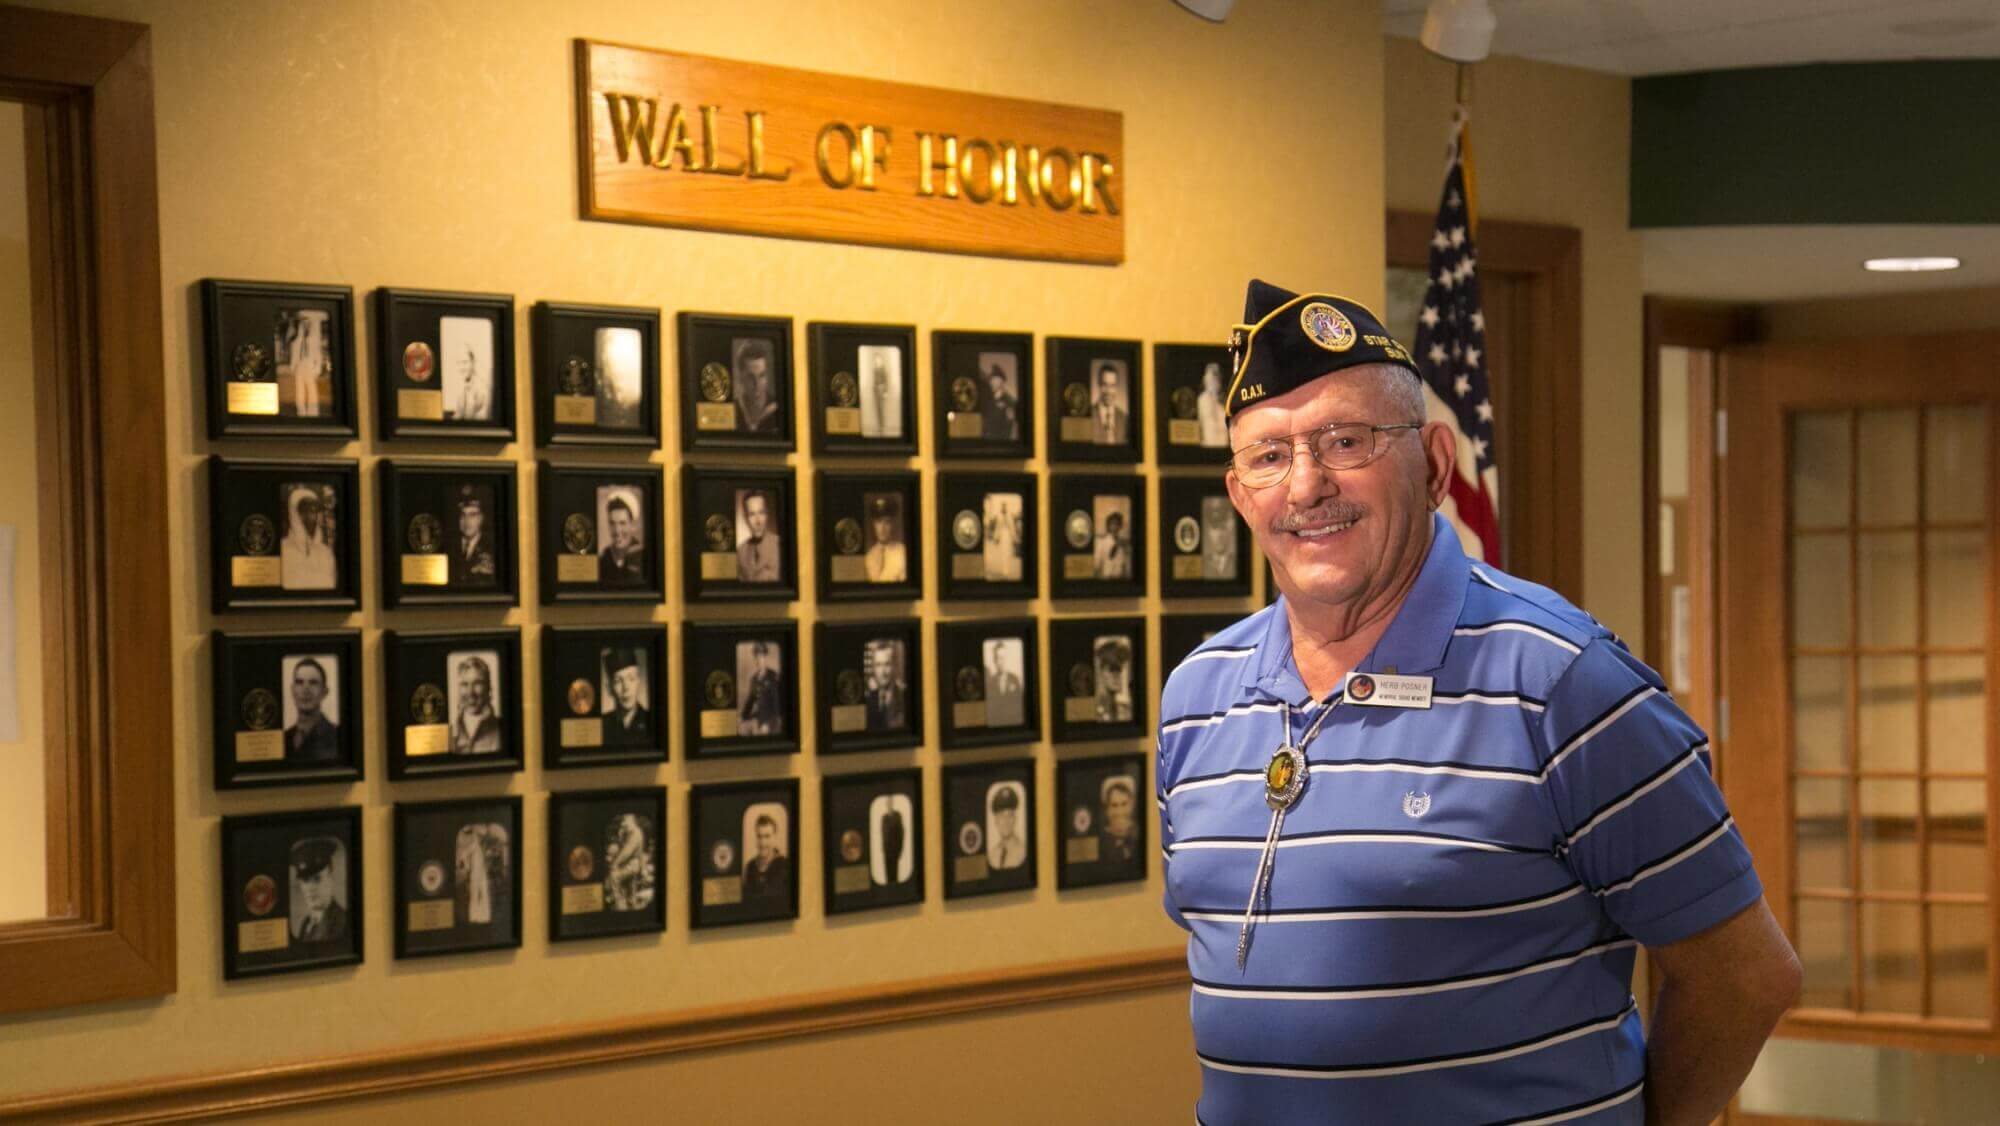 Wall of Honor dedicated to Lakeline Oak's resident veterans.